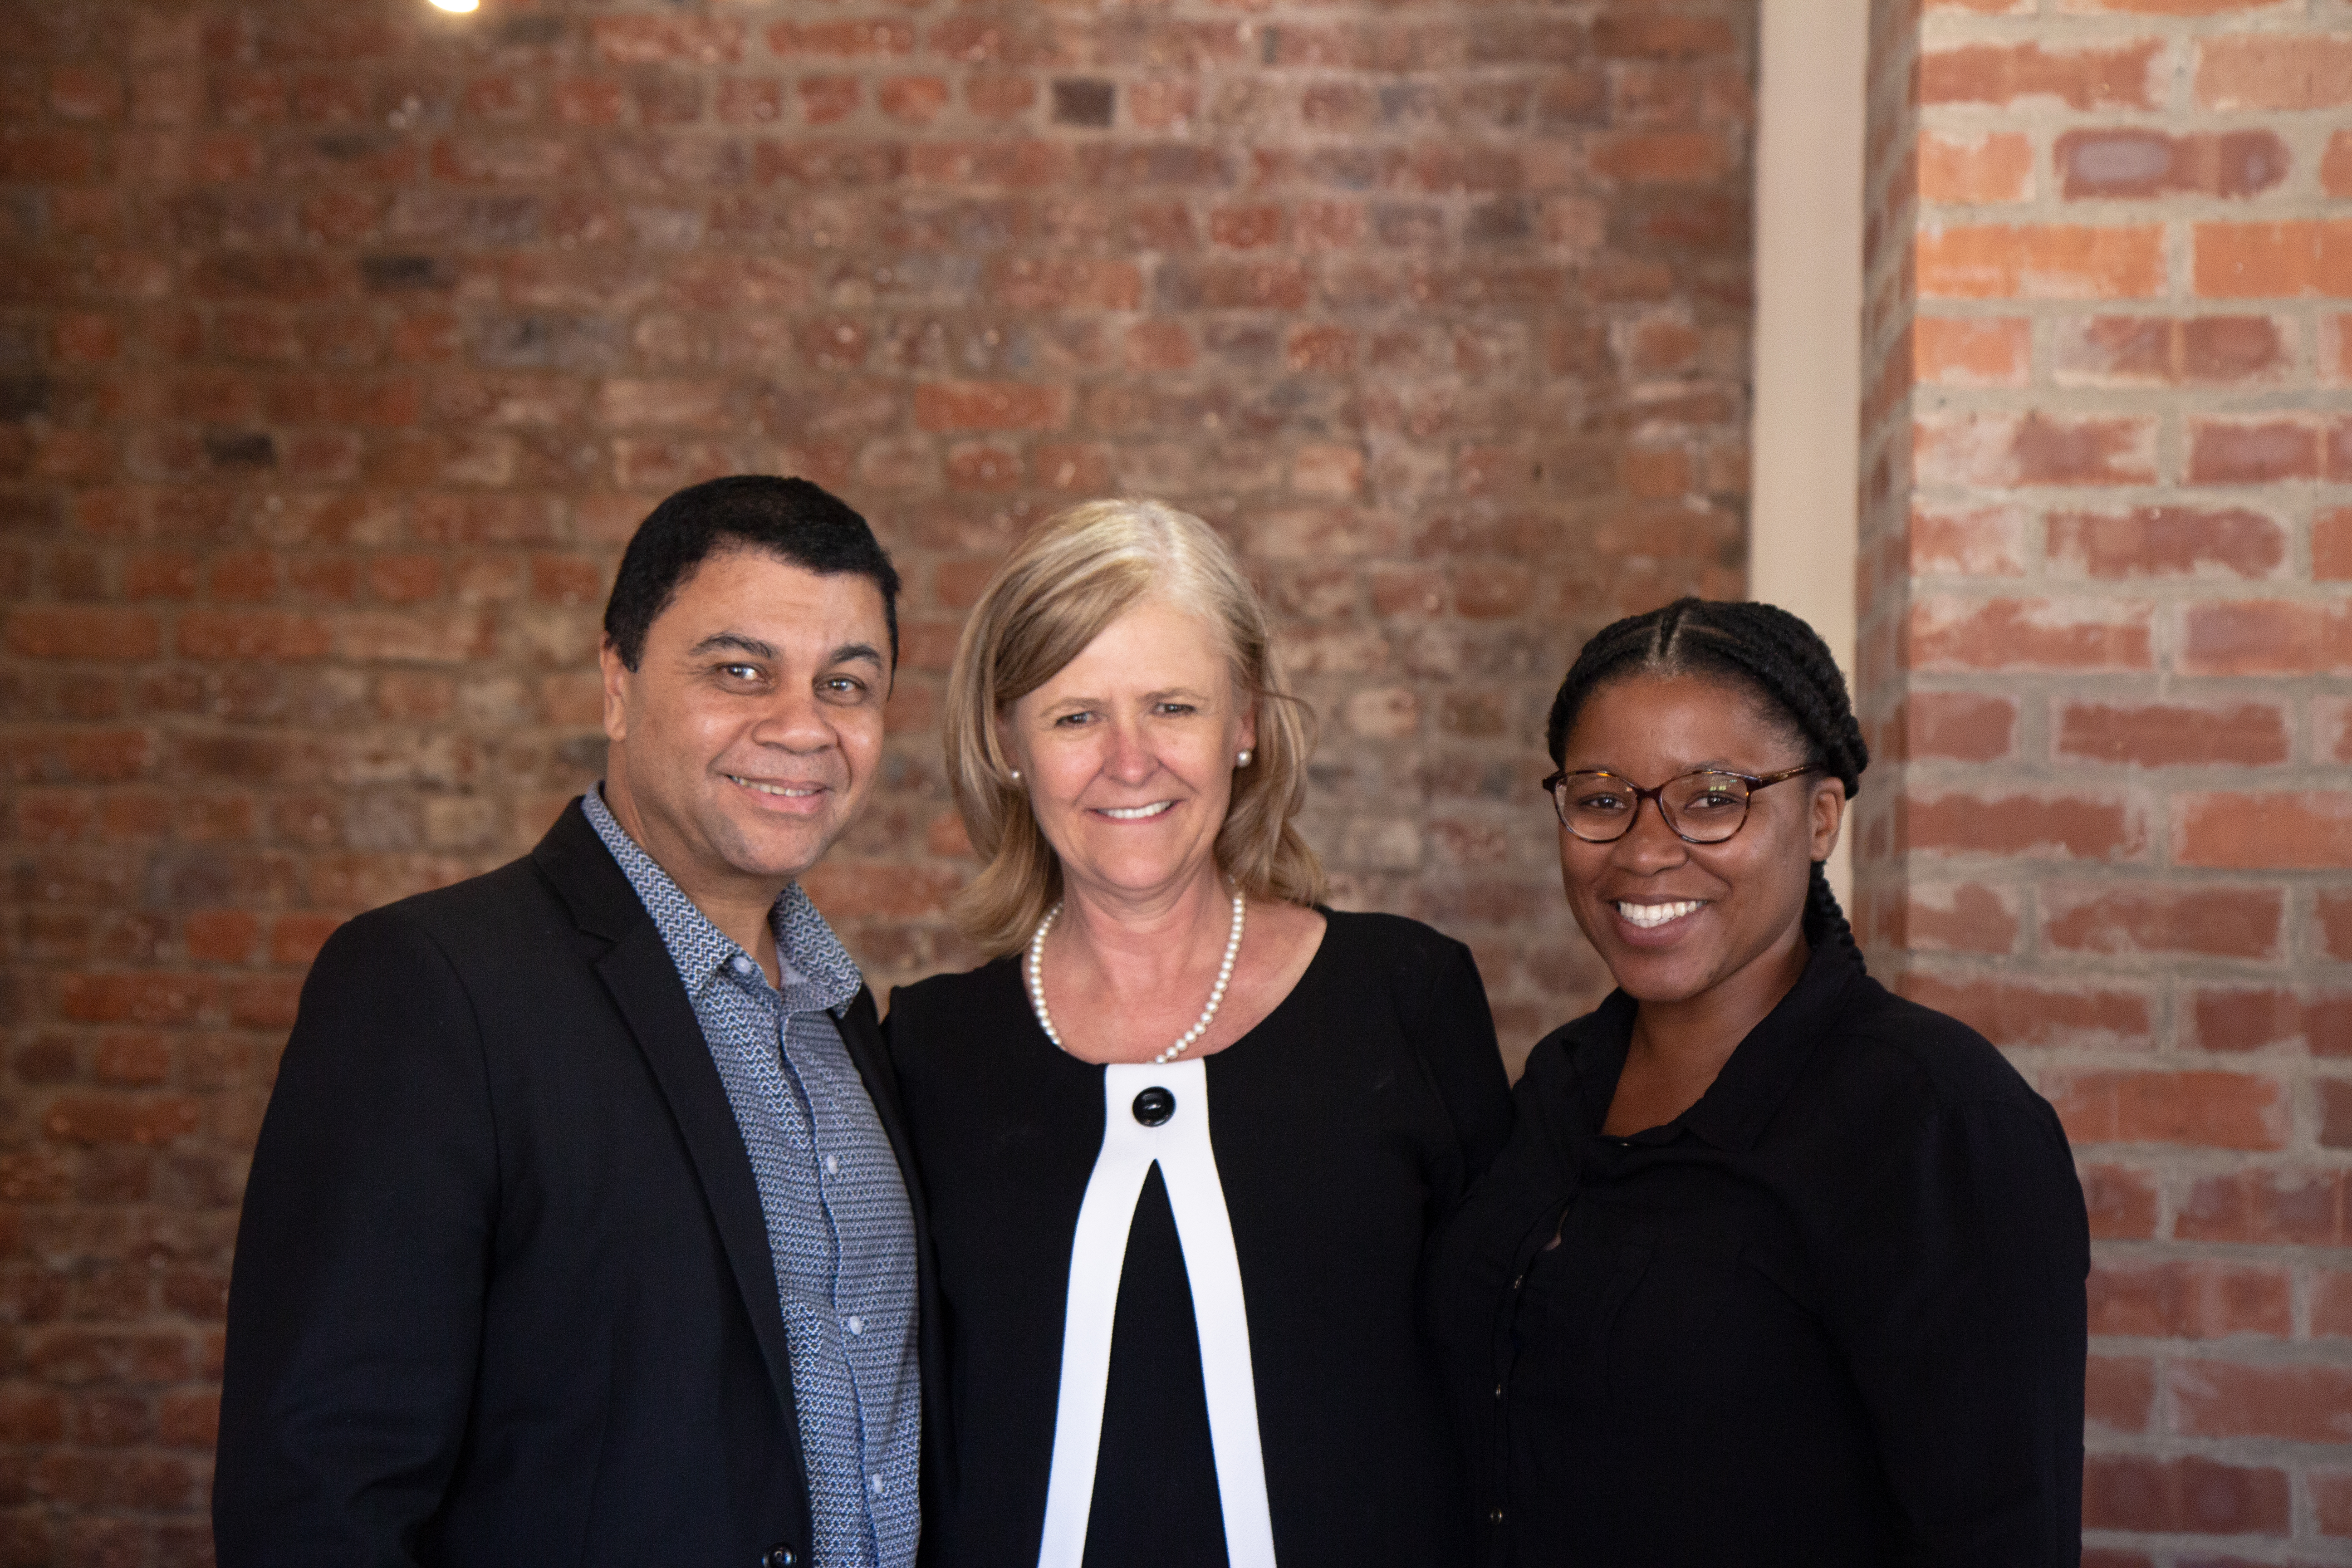 Prof Francis Petersen, Rector and Vice-Chancellor with Dr Adri Van Der Merwe and Avela Ntsongelwa